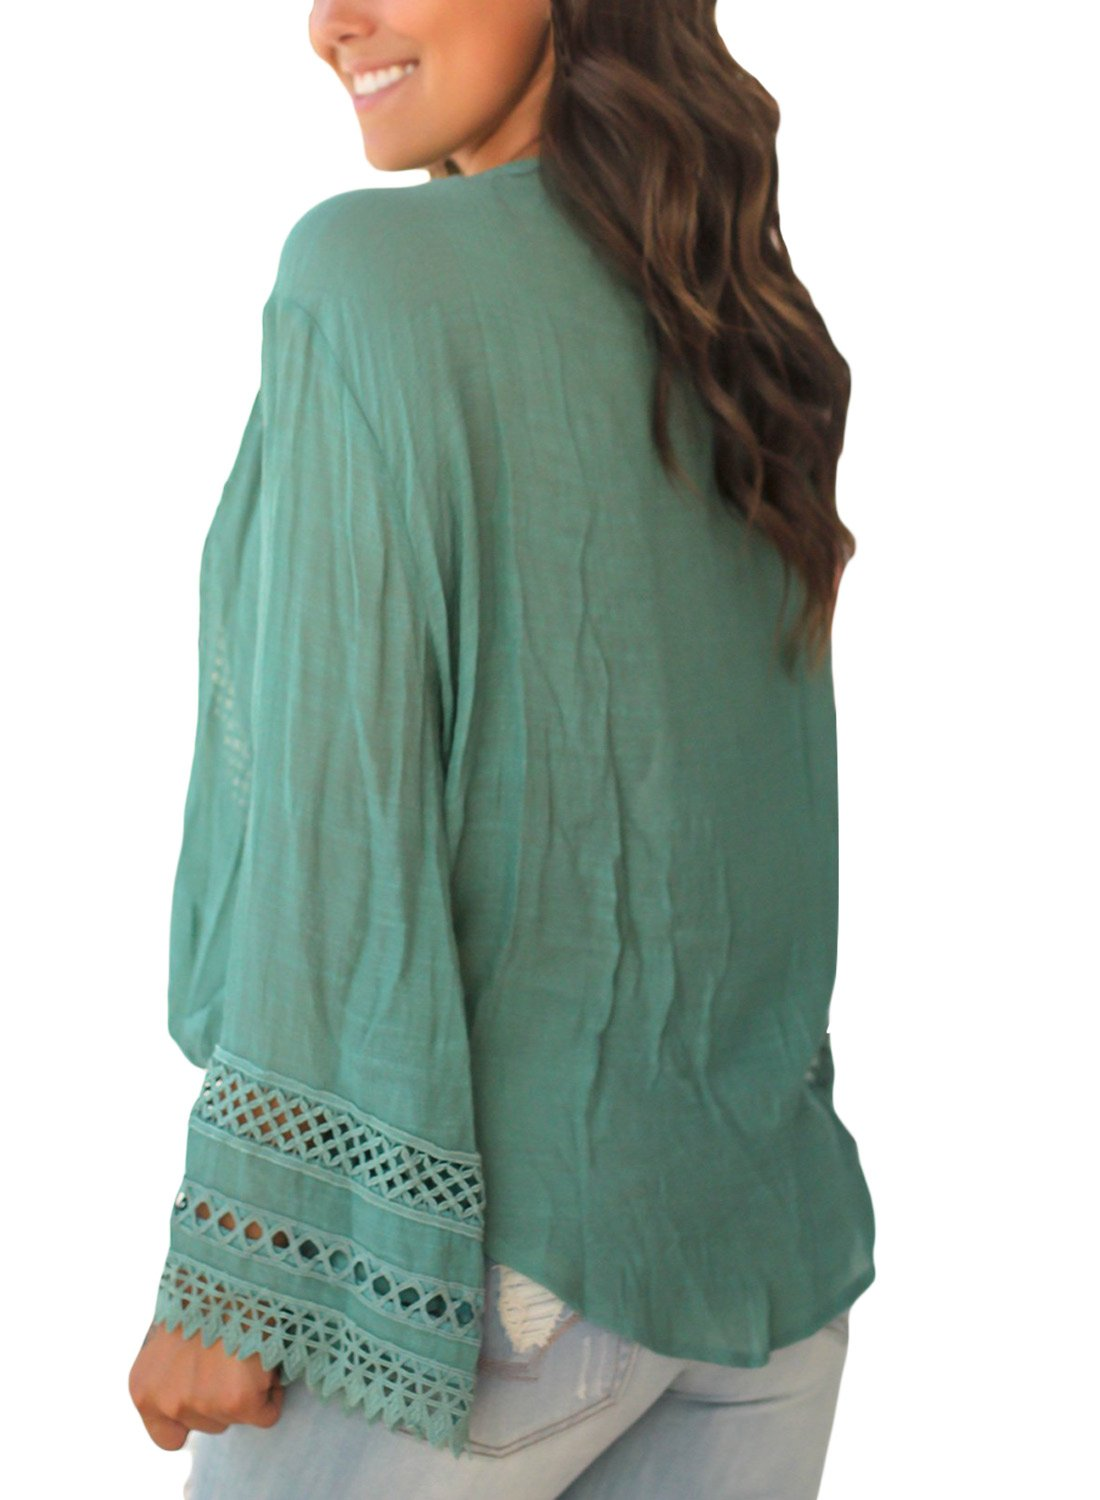 FARYSAYS Women's Casual Crochet V Neck Hollow Out Long Bell Sleeve T Shirt Tops Blouse Green X-Large by FARYSAYS (Image #2)